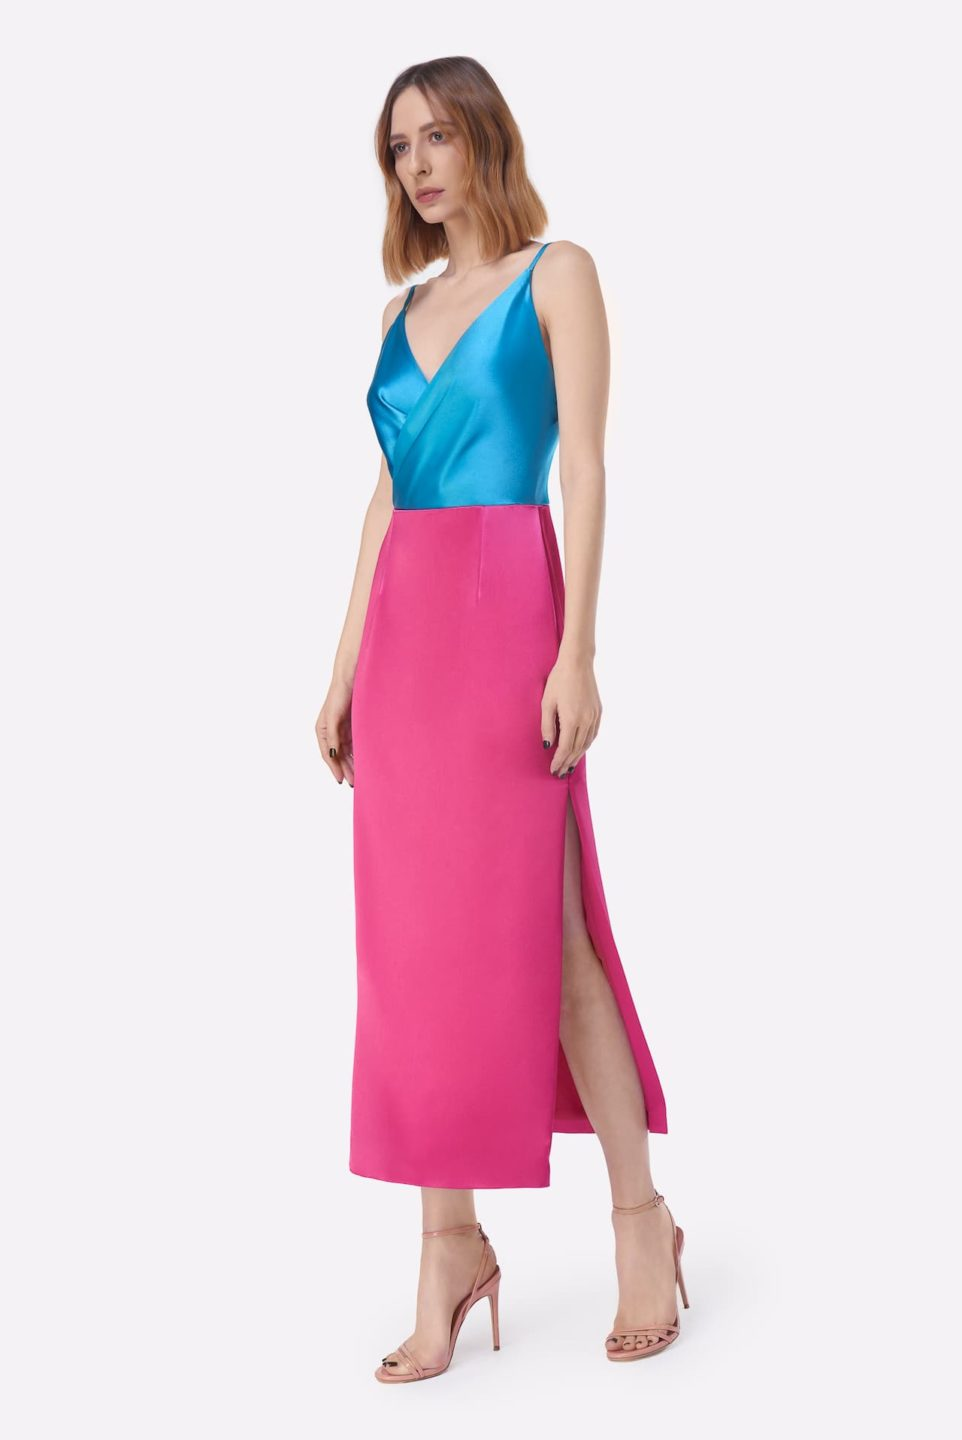 Maralina PS2137 Blue Pink Satin Colorblock Sheath Dress with Surplice Bust